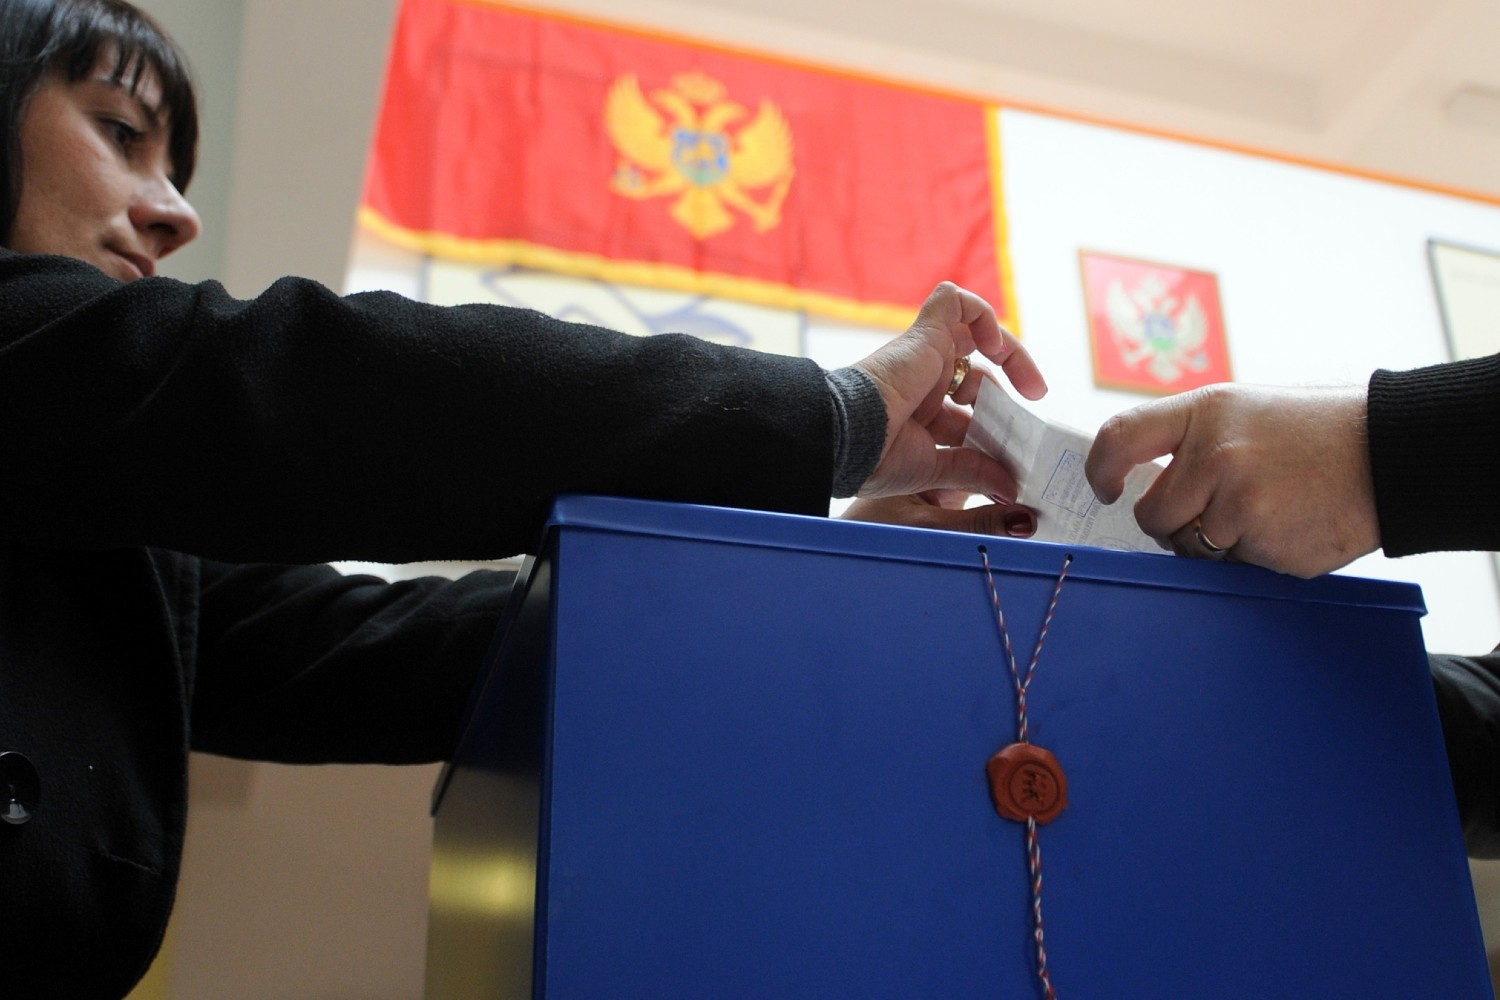 Image: 0158094063, License: Rights managed, A Montenegrin voting committee member (L) checks a ballot at a polling station in Podgorica on April 7, 2013. Montenegro began voting Sunday in a presidential election tipped to give the incumbent, Filip Vujanovic, a third mandate that would cement the ruling coalition's grip on power in the economically struggling Balkan state aiming to join the EU., Place: MONTENEGRO, Model Release: No or not aplicable, Credit line: Profimedia.com, AFP